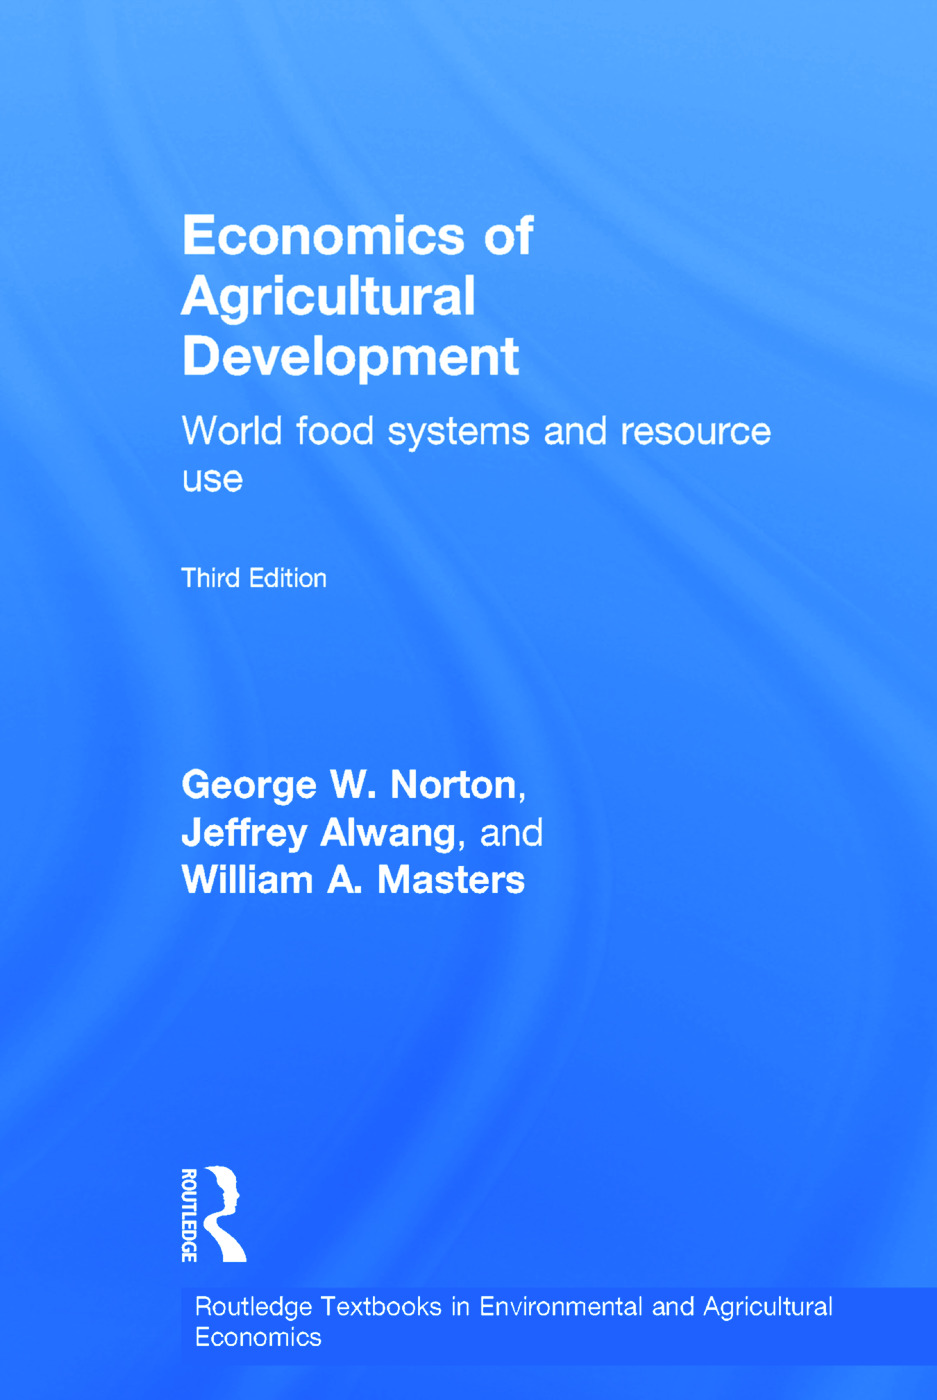 Economics of Agricultural Development | World Food Systems